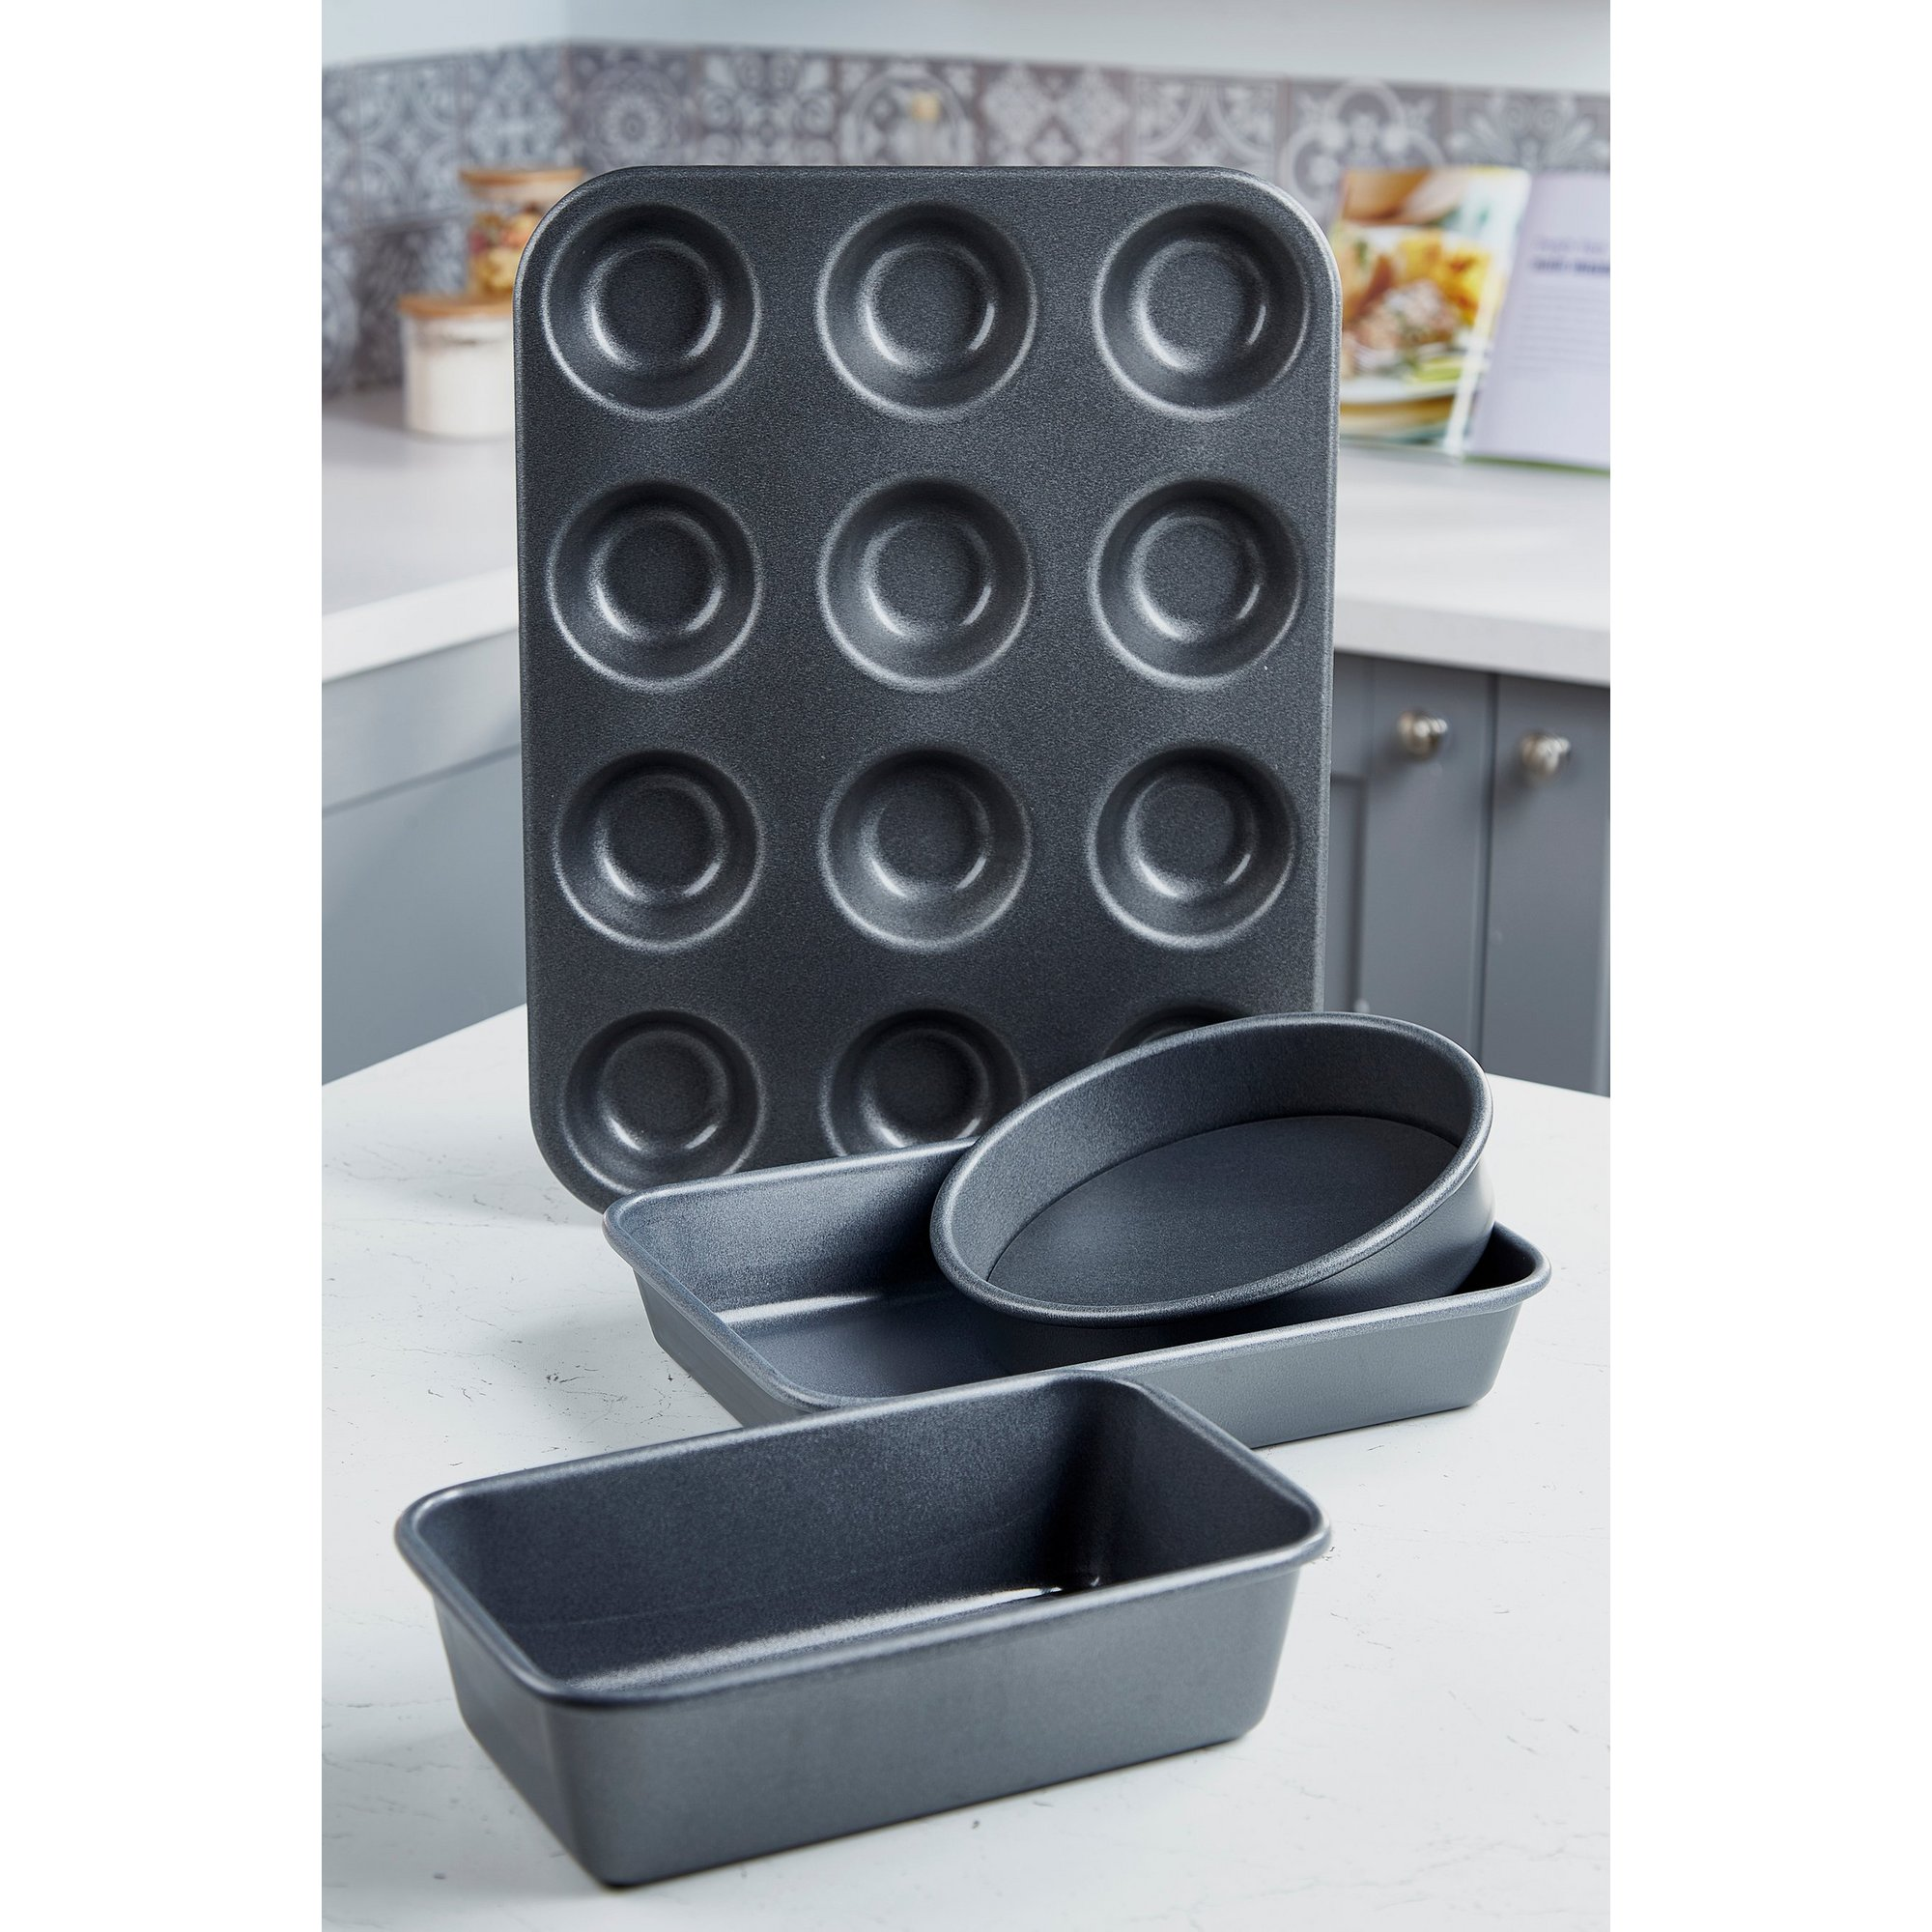 Image of Prestige 4 Piece Bakeware Set